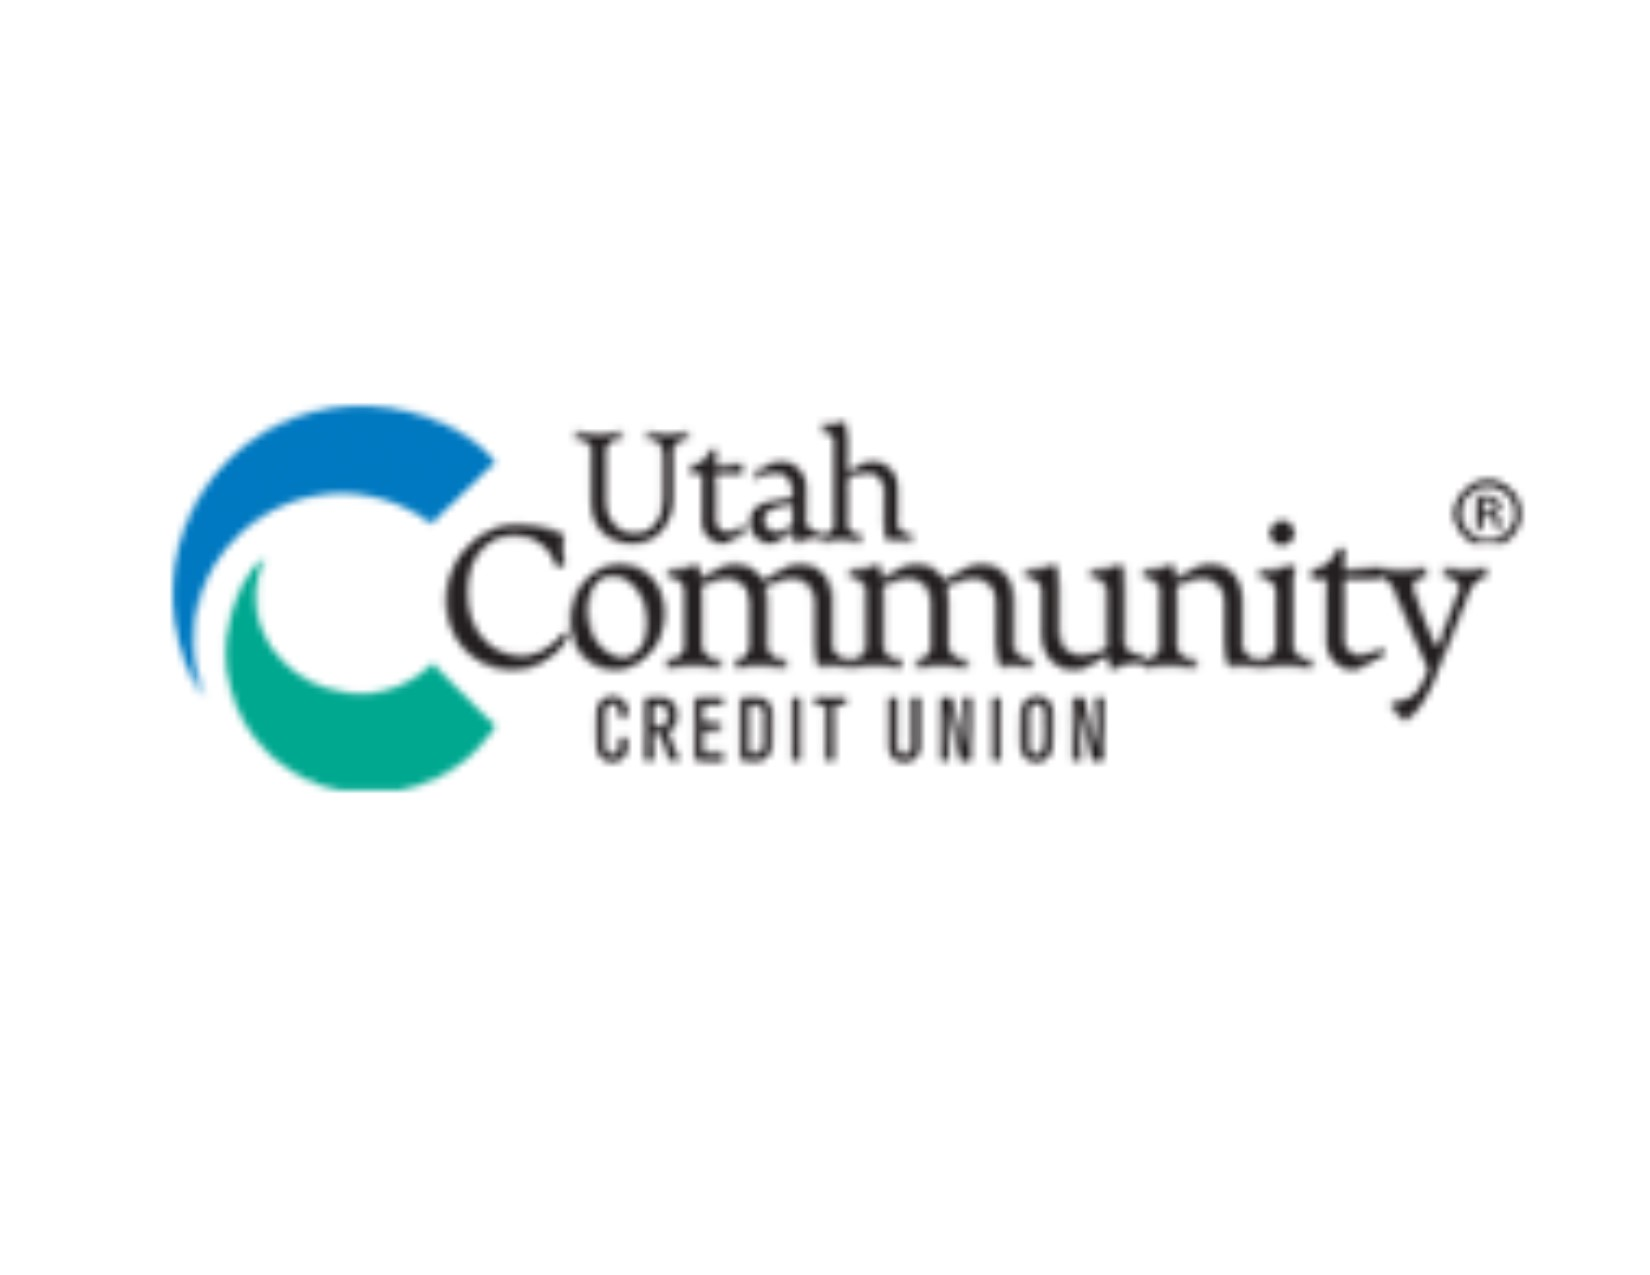 Utah Community Credit Union Opens in new window